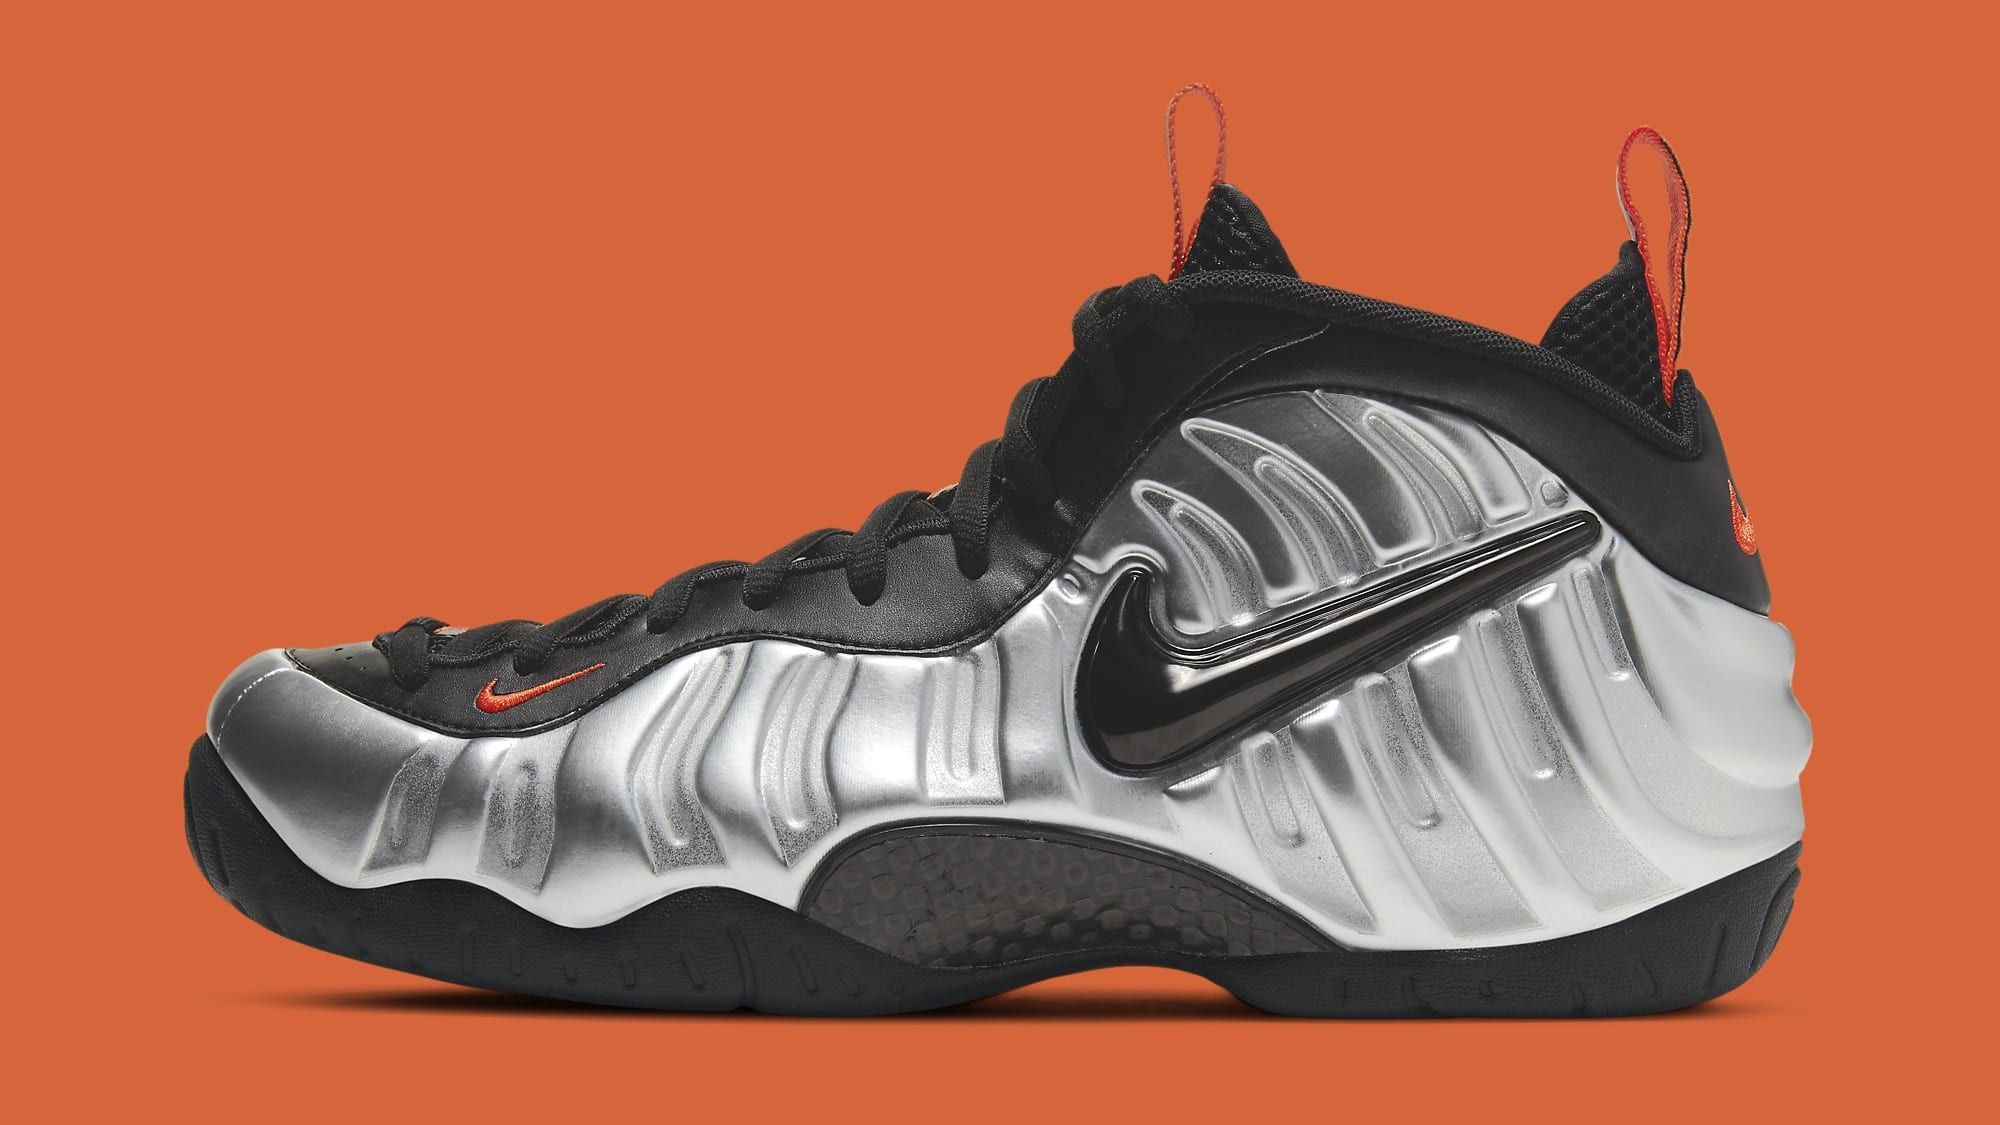 Nike Air Foamposite Pro 'Halloween' CT2286-001 Lateral